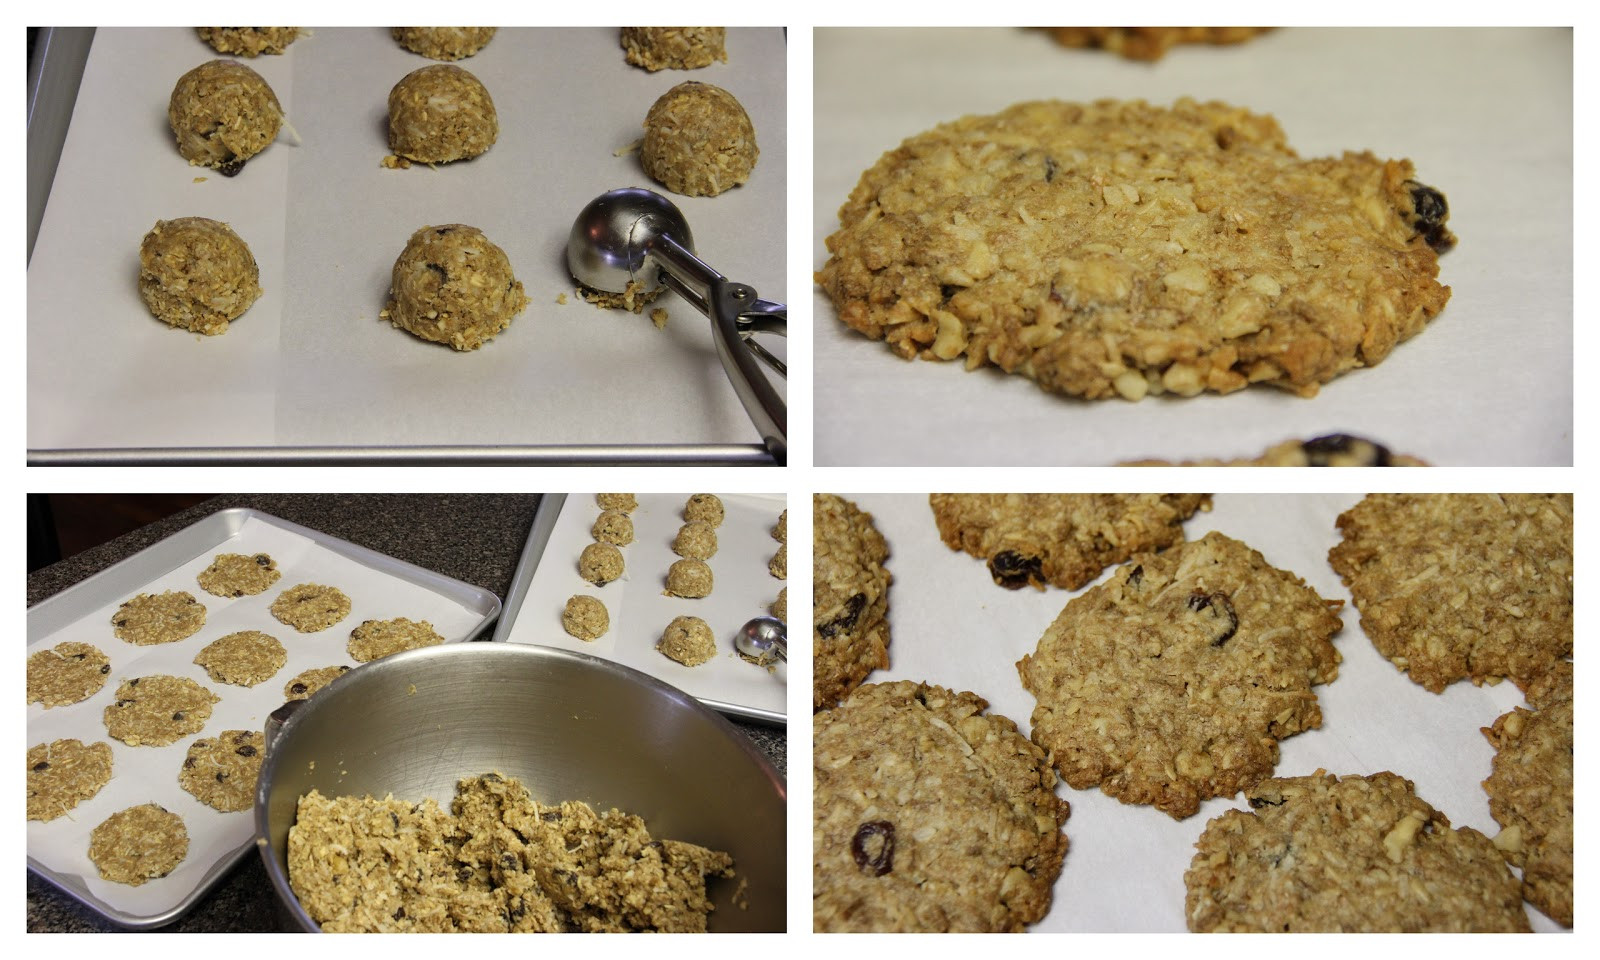 Healthy Oatmeal Cookies With Coconut Oil  Mennonite Girls Can Cook Coconut Oil Oatmeal Cookies